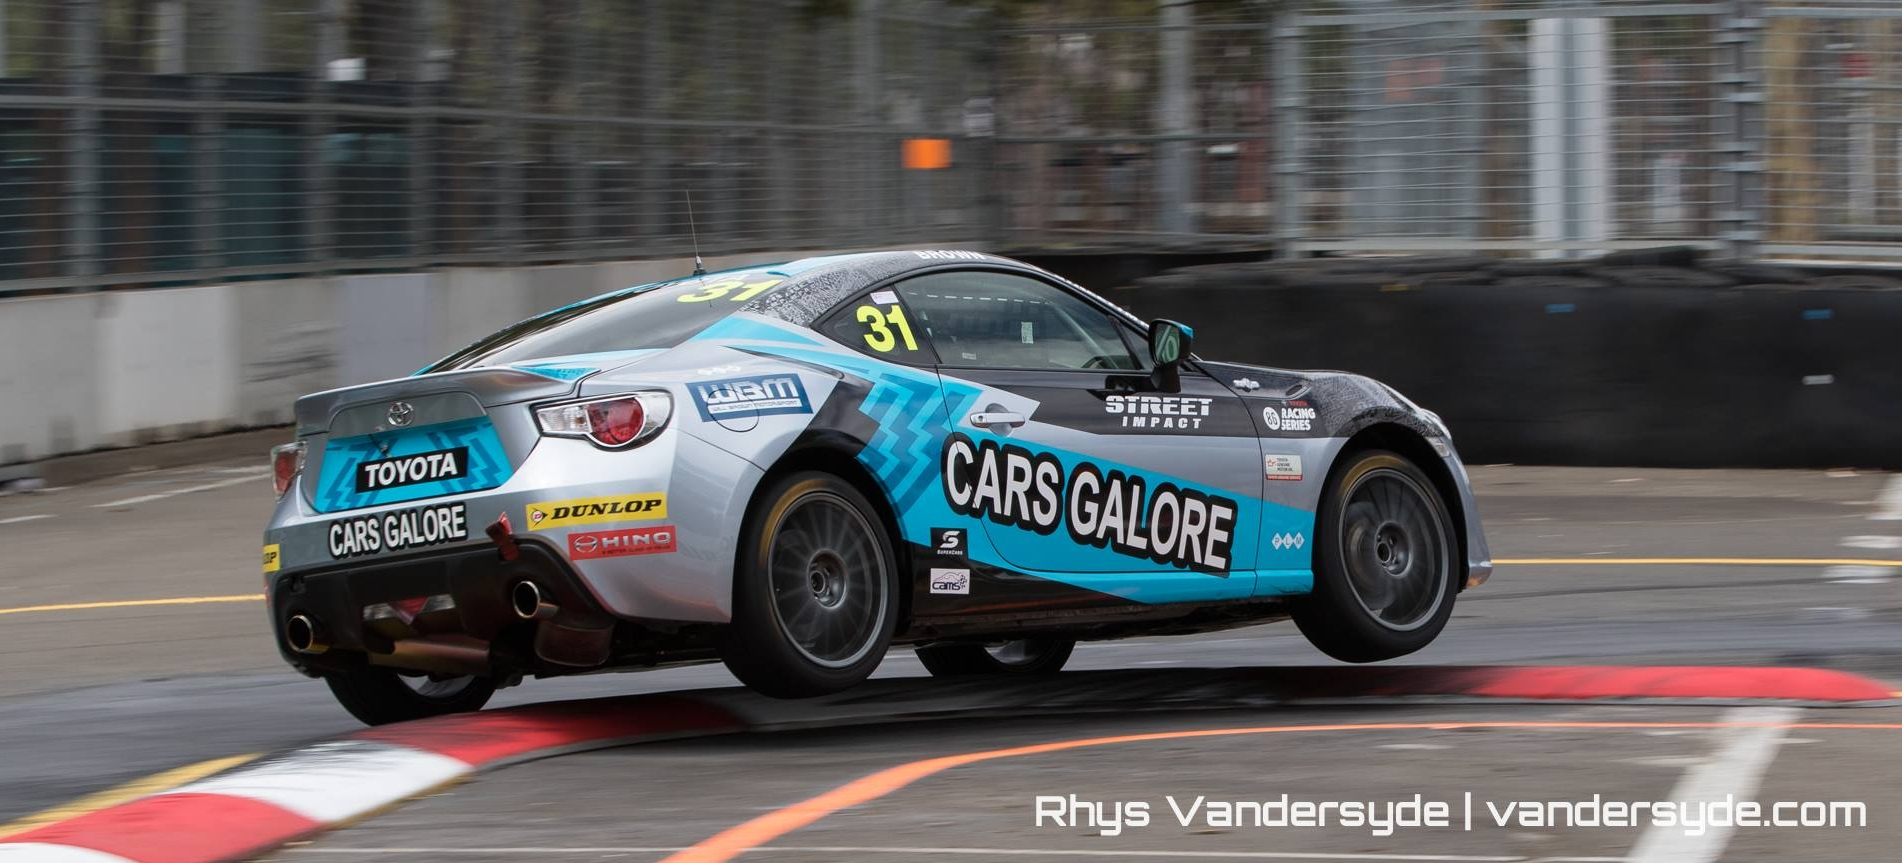 Will Brown in his Toyota 86 car